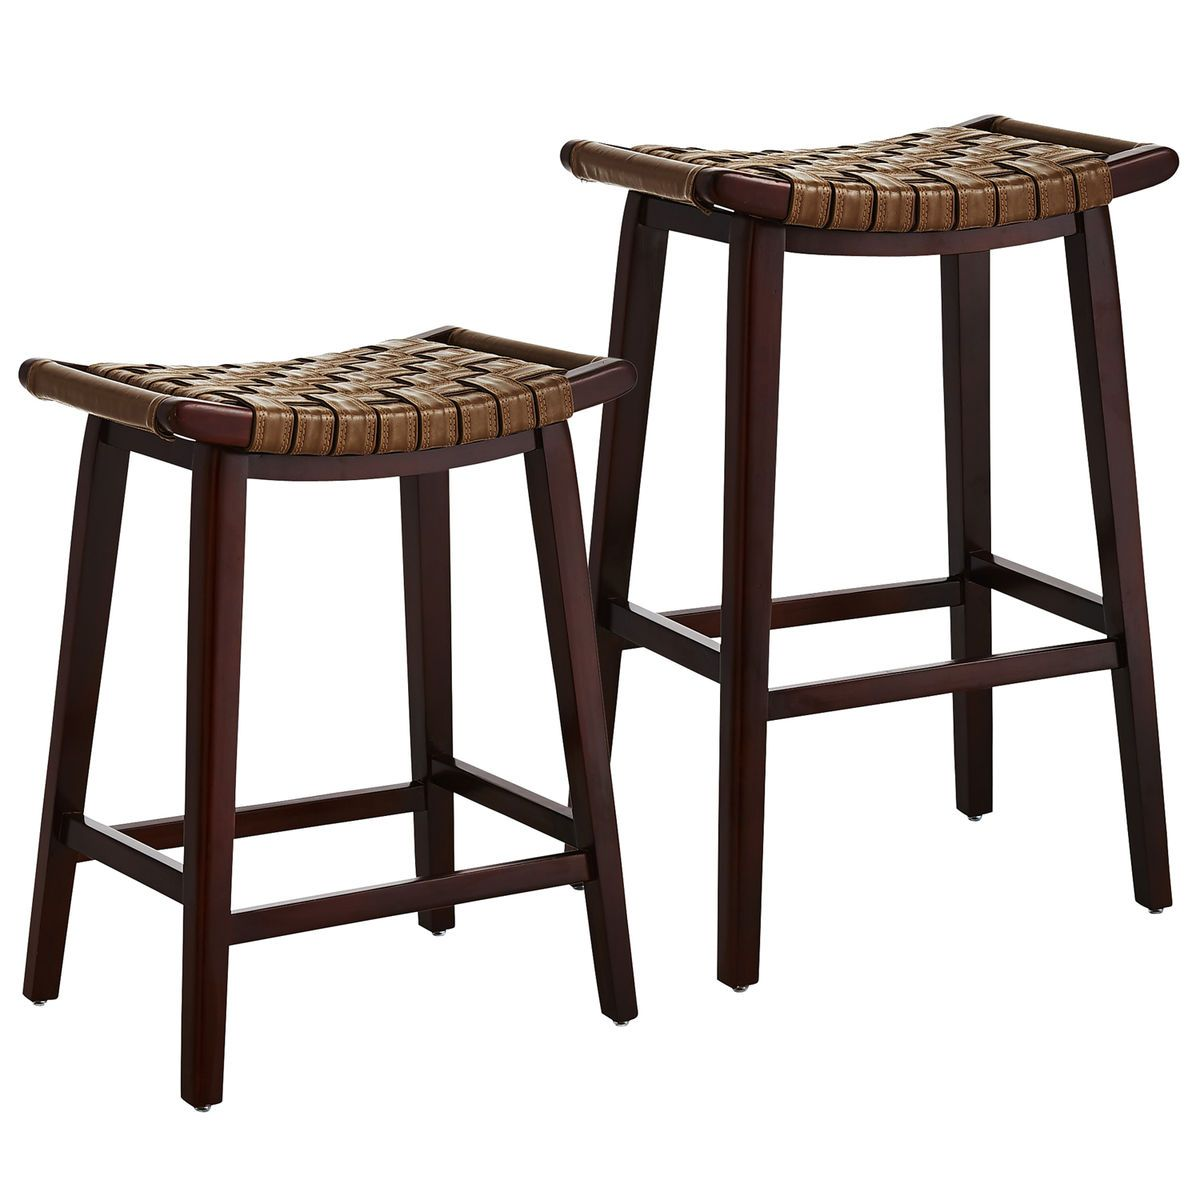 Keating Backless Bar Counter Stools Woodland Pier 1 Imports